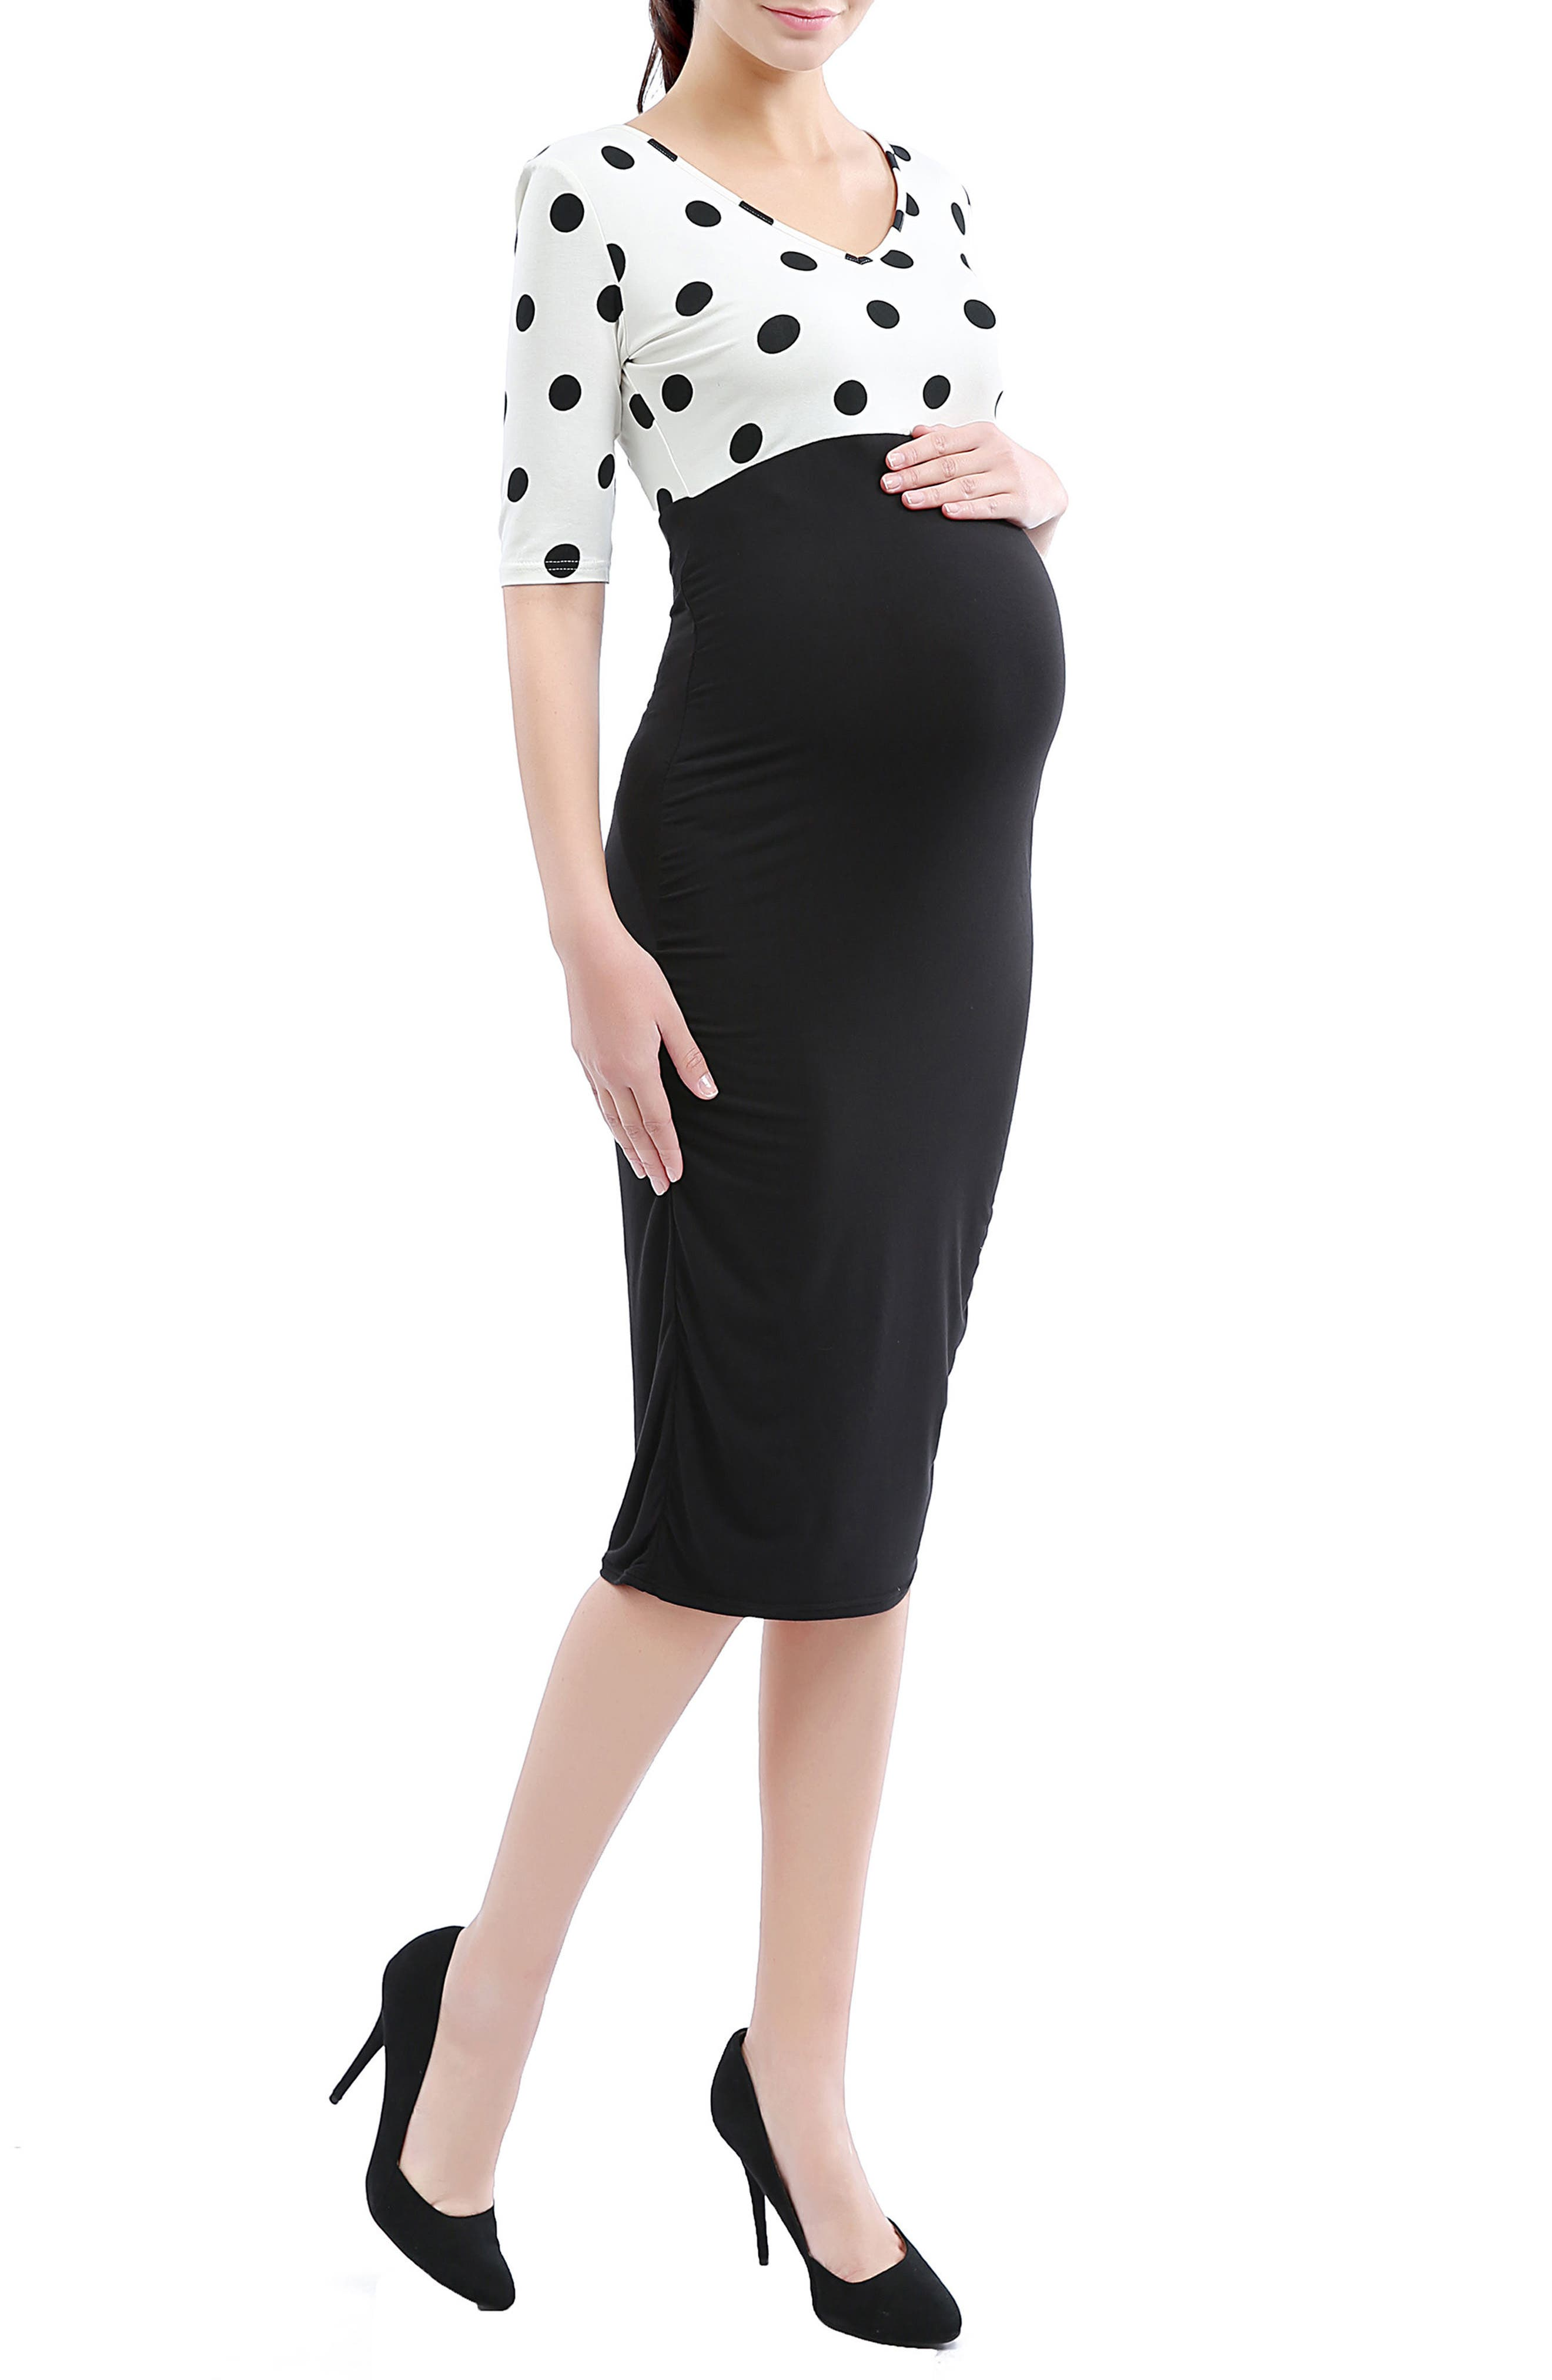 'Farrah' Maternity Body-Con Dress,                         Main,                         color, Black/White